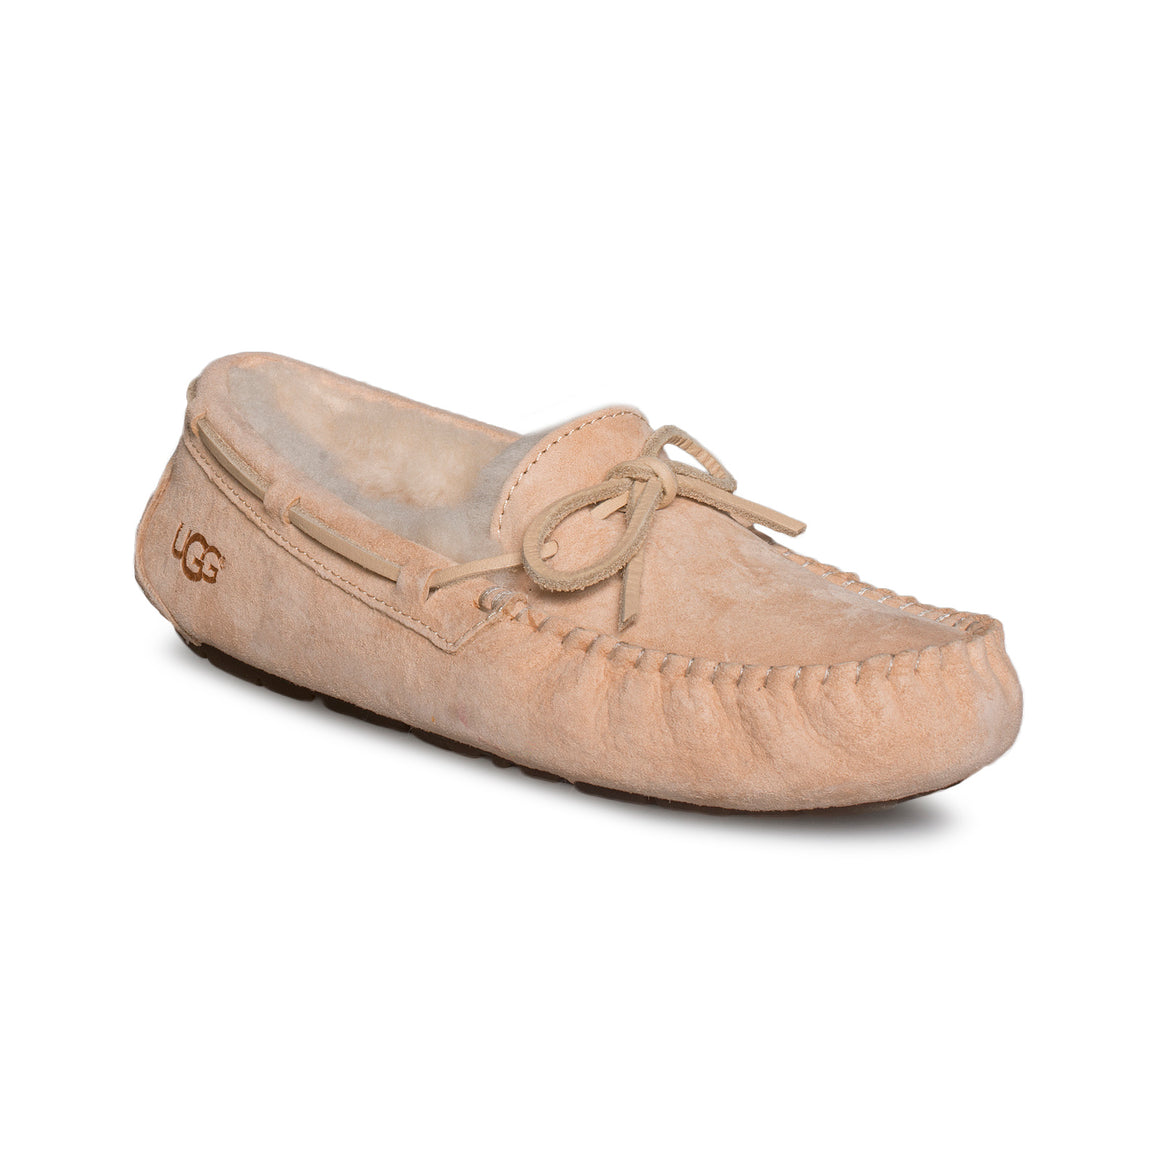 UGG Dakota Amberlight Slippers - Women's